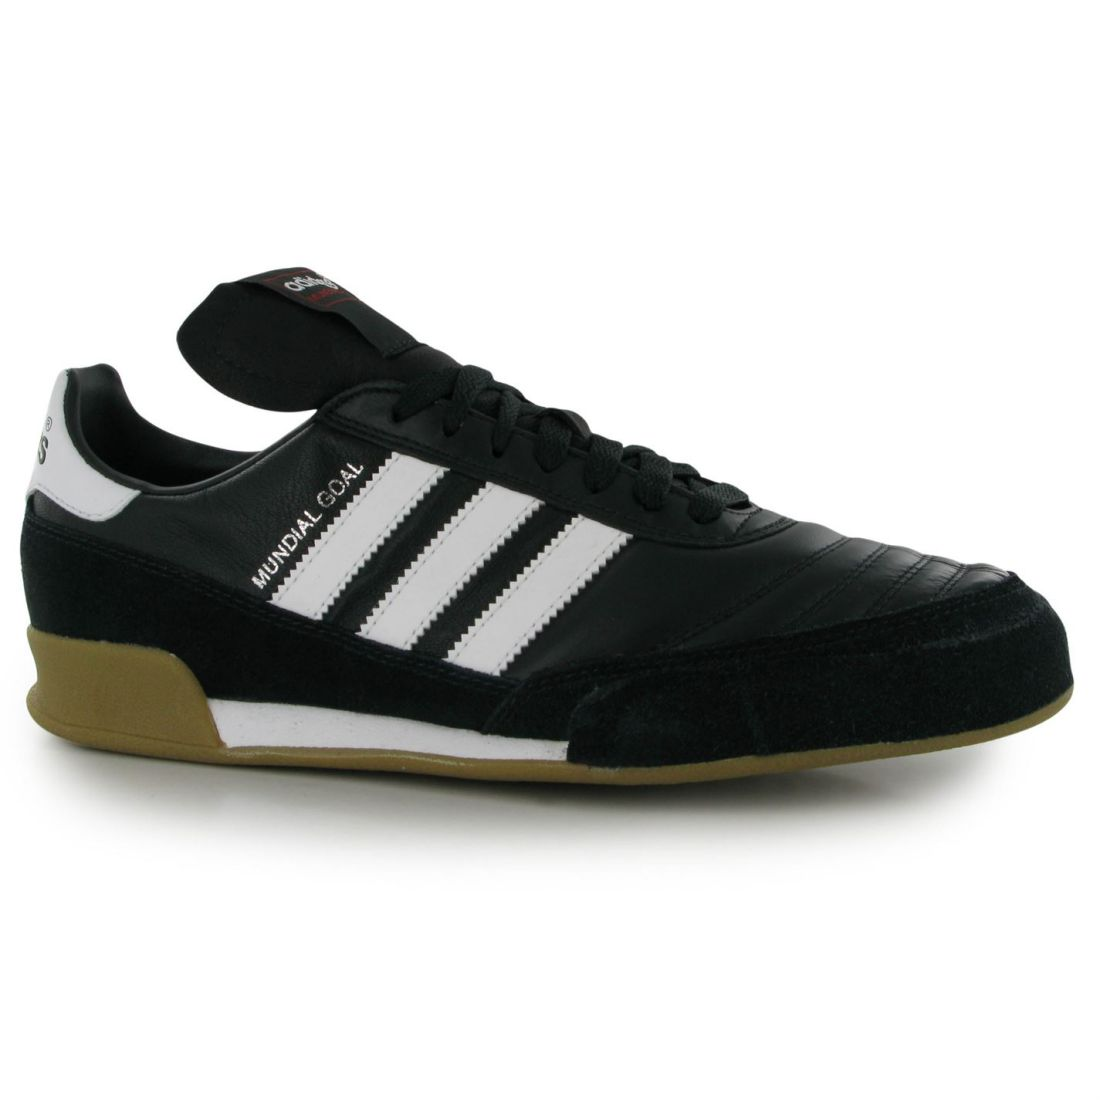 Adidas Mens Mundial Goal Indoor Football Trainers Stiefel Lace Up Leather Upper